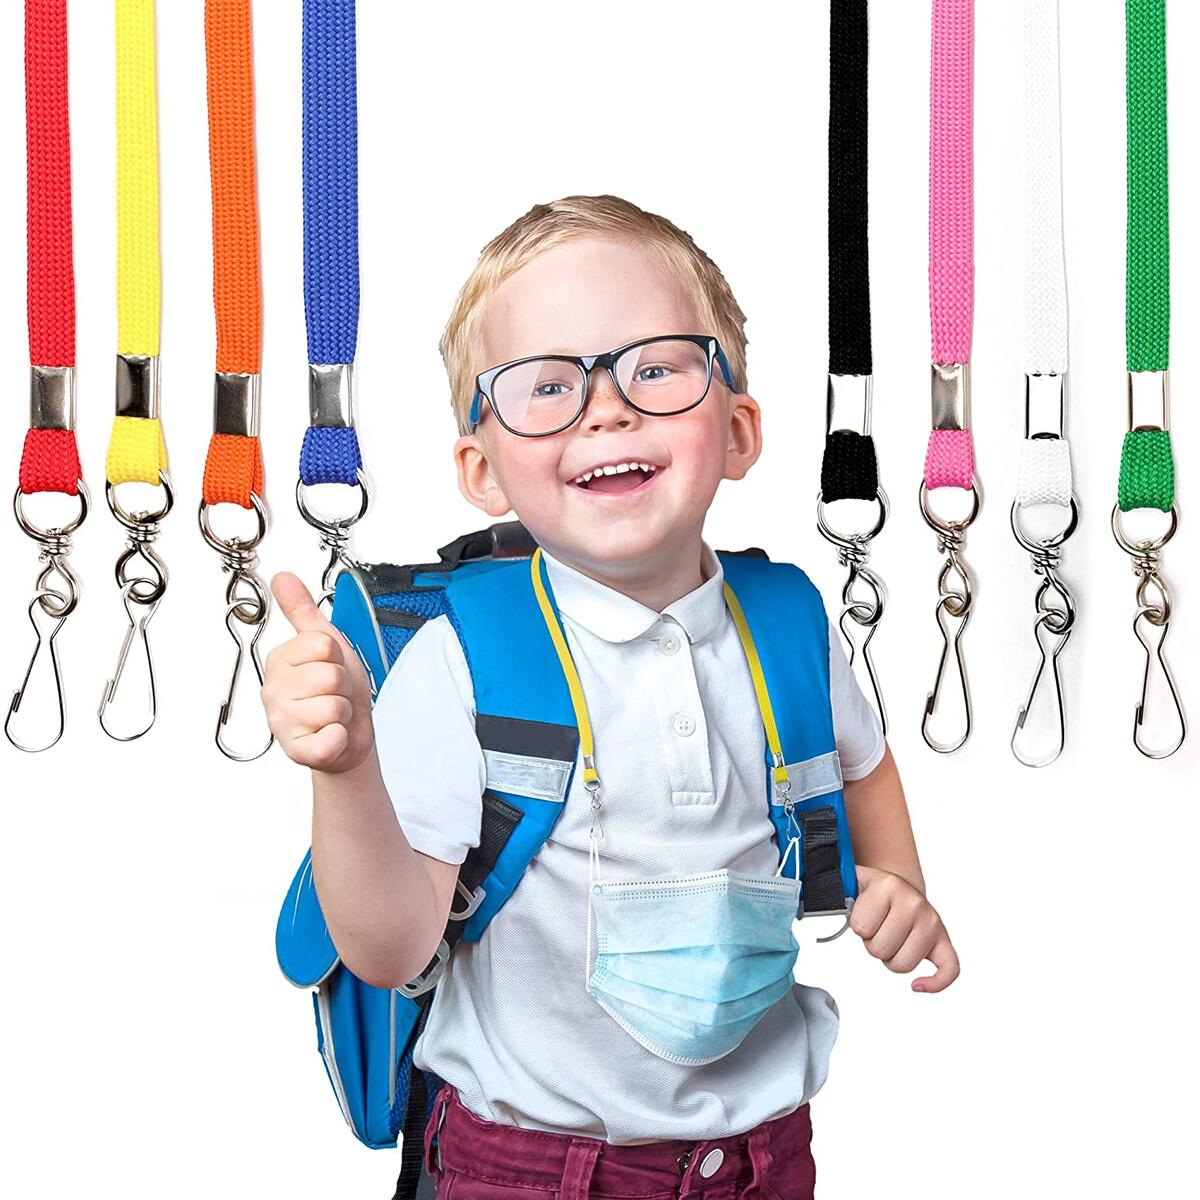 Mask Lanyard (8 Pack) - Face Mask Lanyards with Safety Clip (Mask Chain) – Convenient Face Mask Lanyard for Kids, Mask Holder for Kids and Adults to Use at School or Office, Durable & Easy to Use